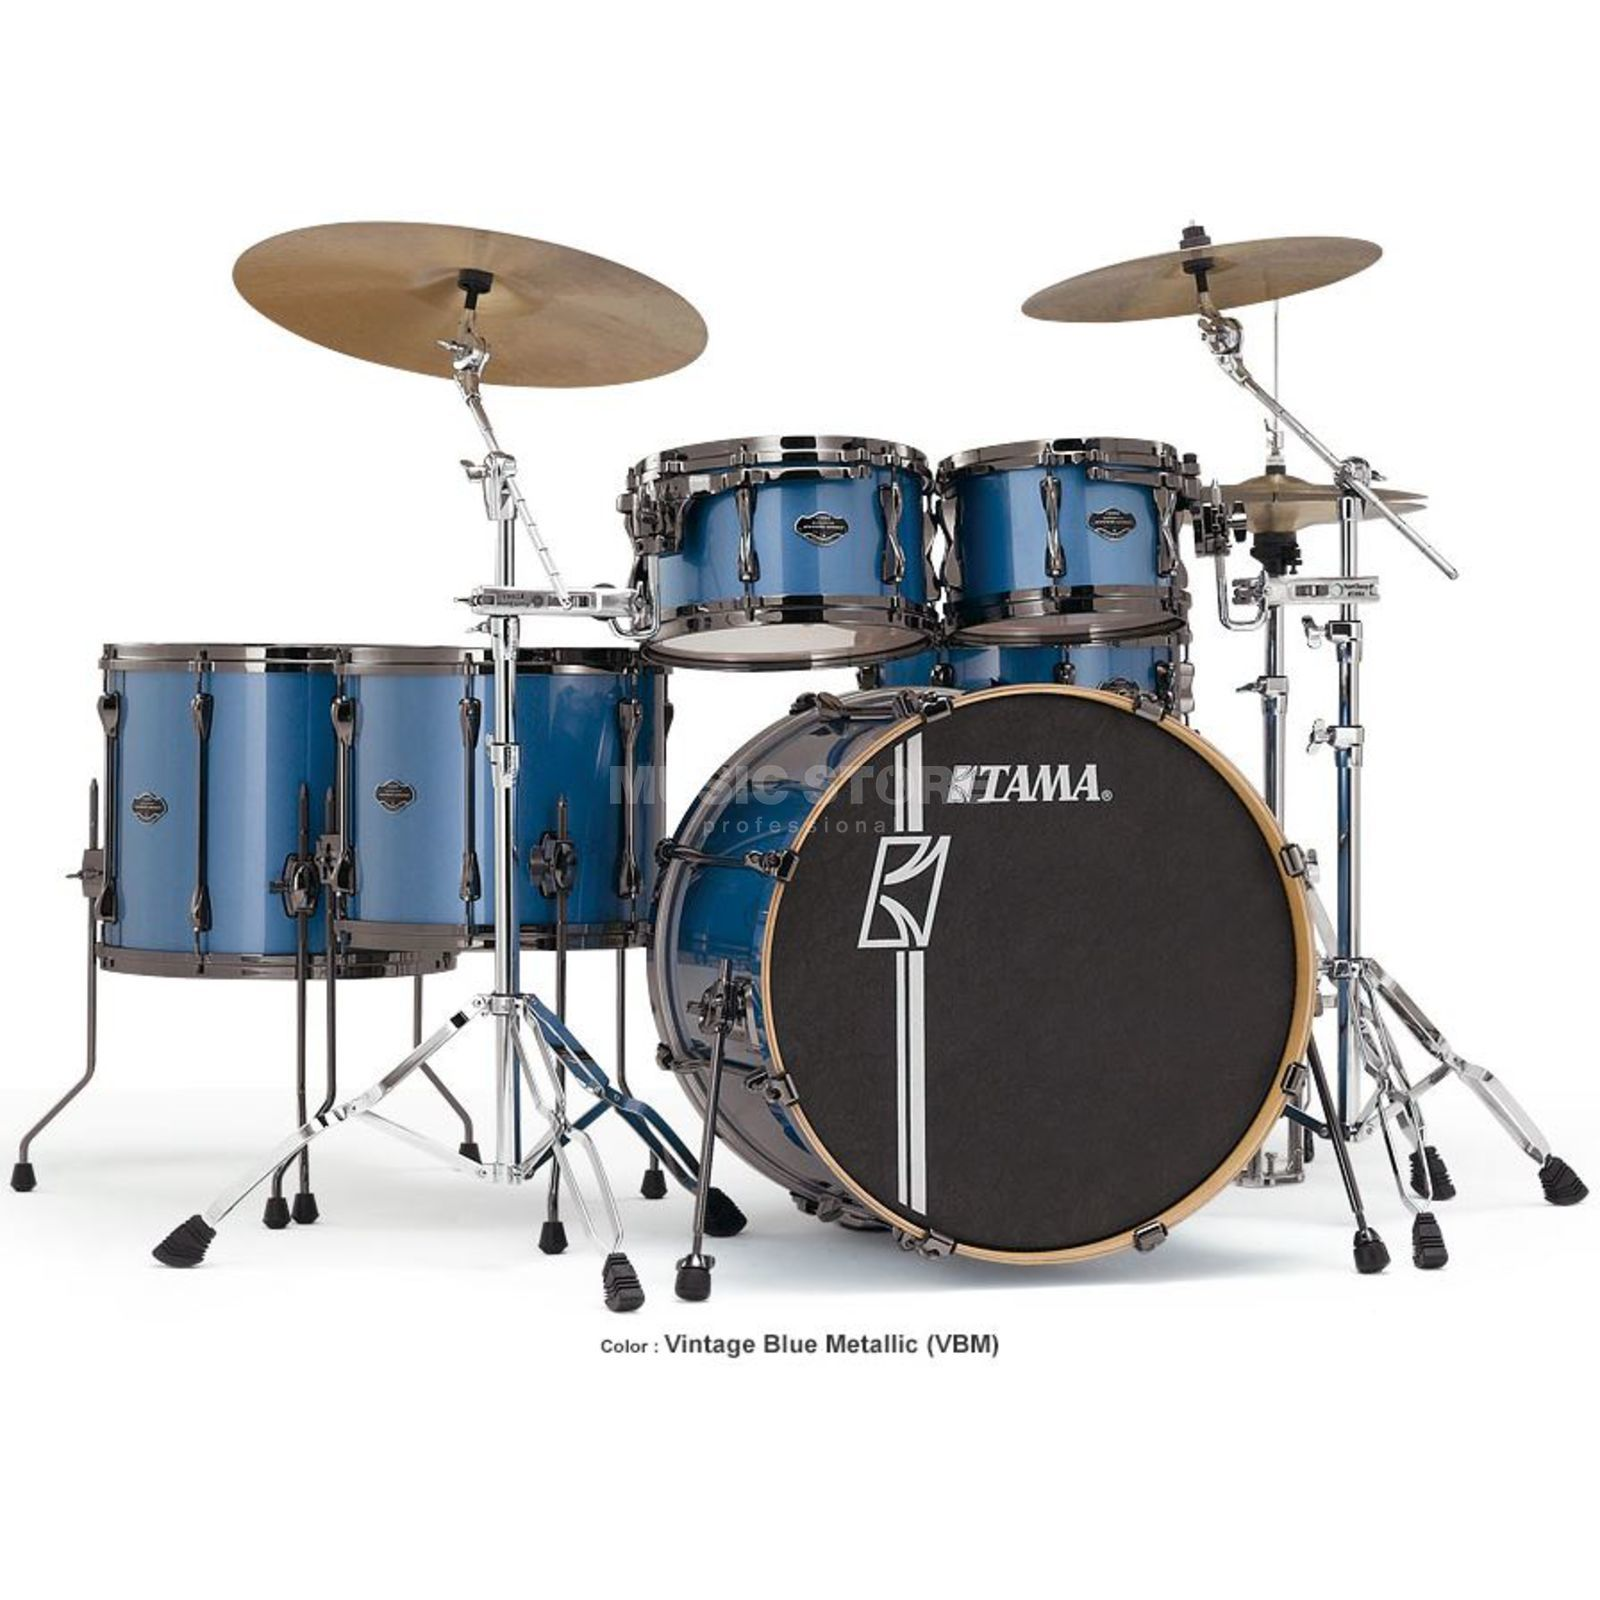 Tama Superstar HD Maple ML52HZBN, Vintage Blue Metallic, VBM Produktbillede